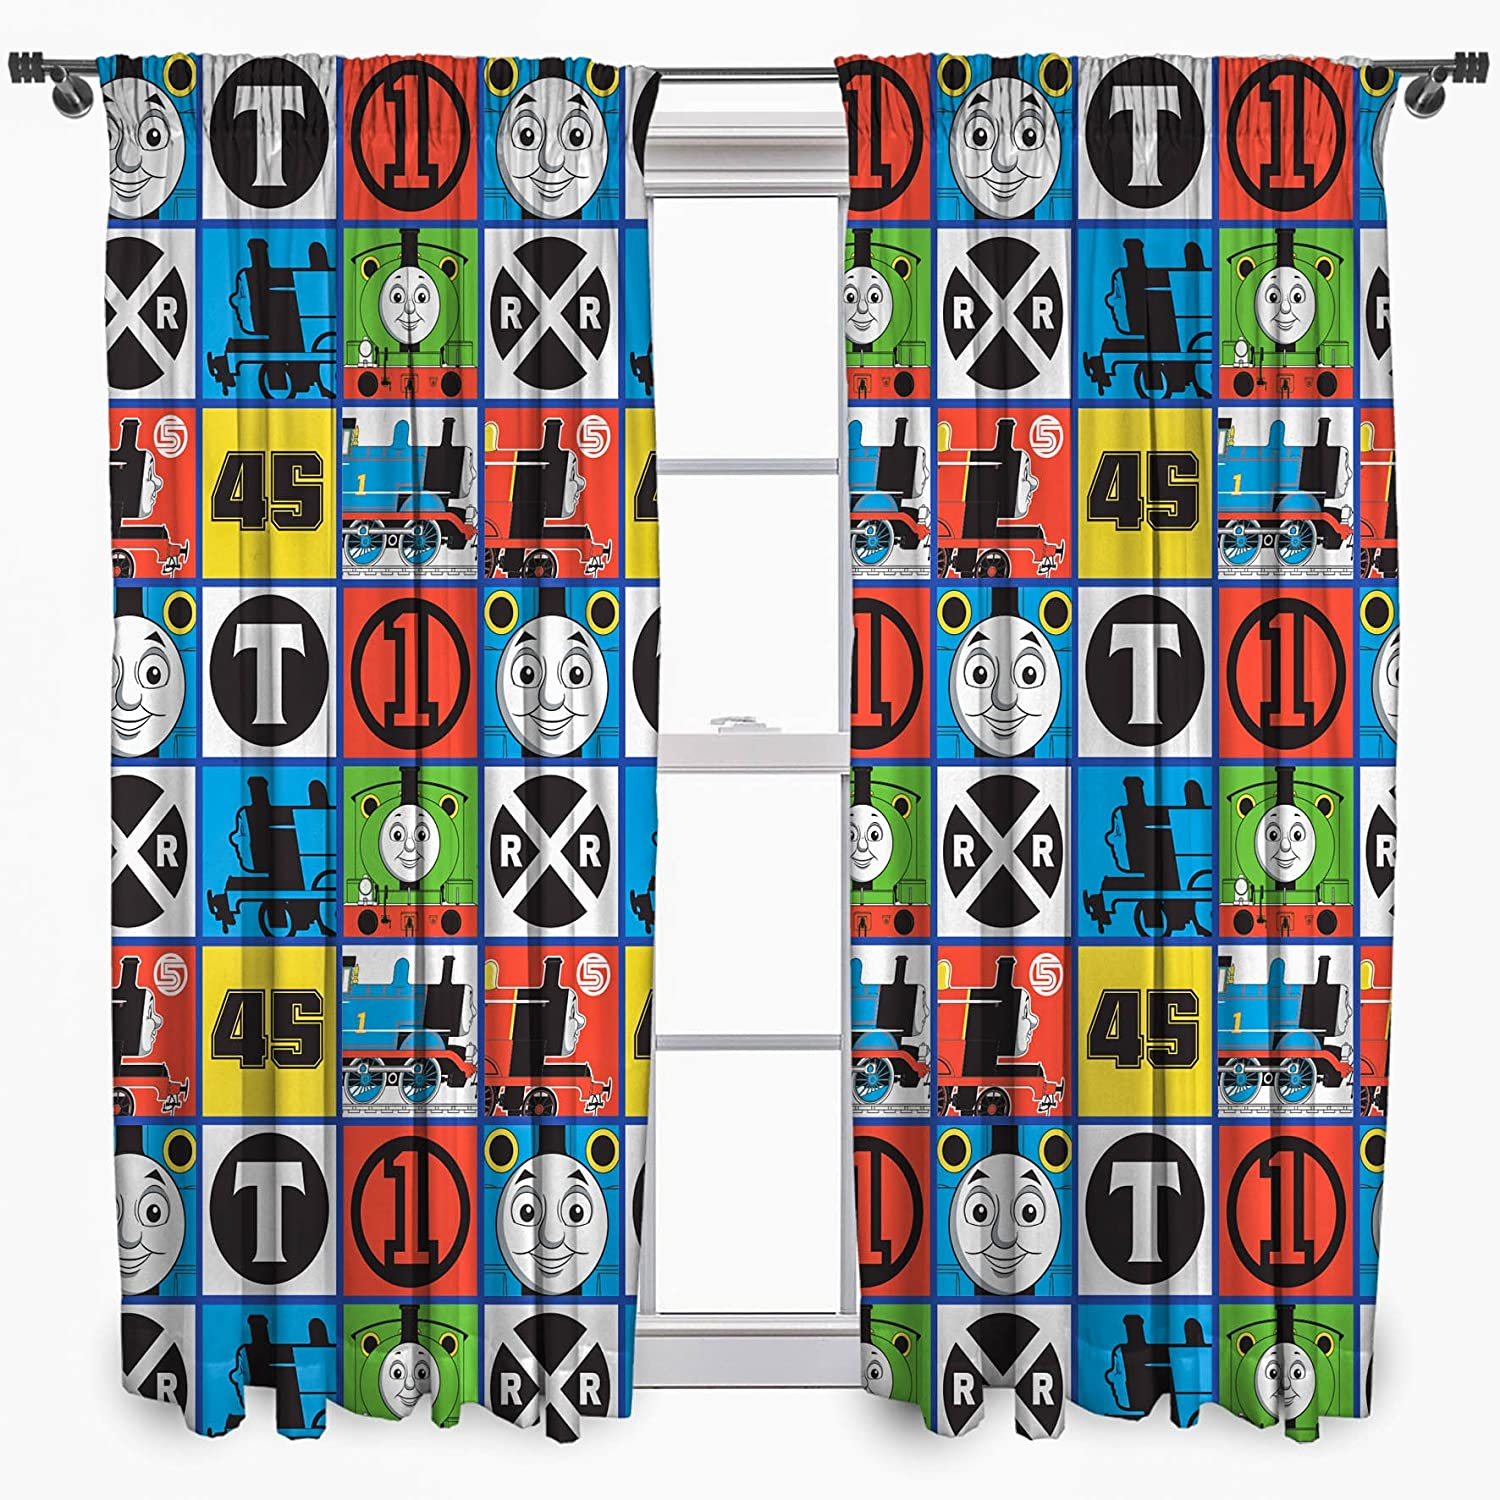 Thomas and Friends Curtains 54s Team